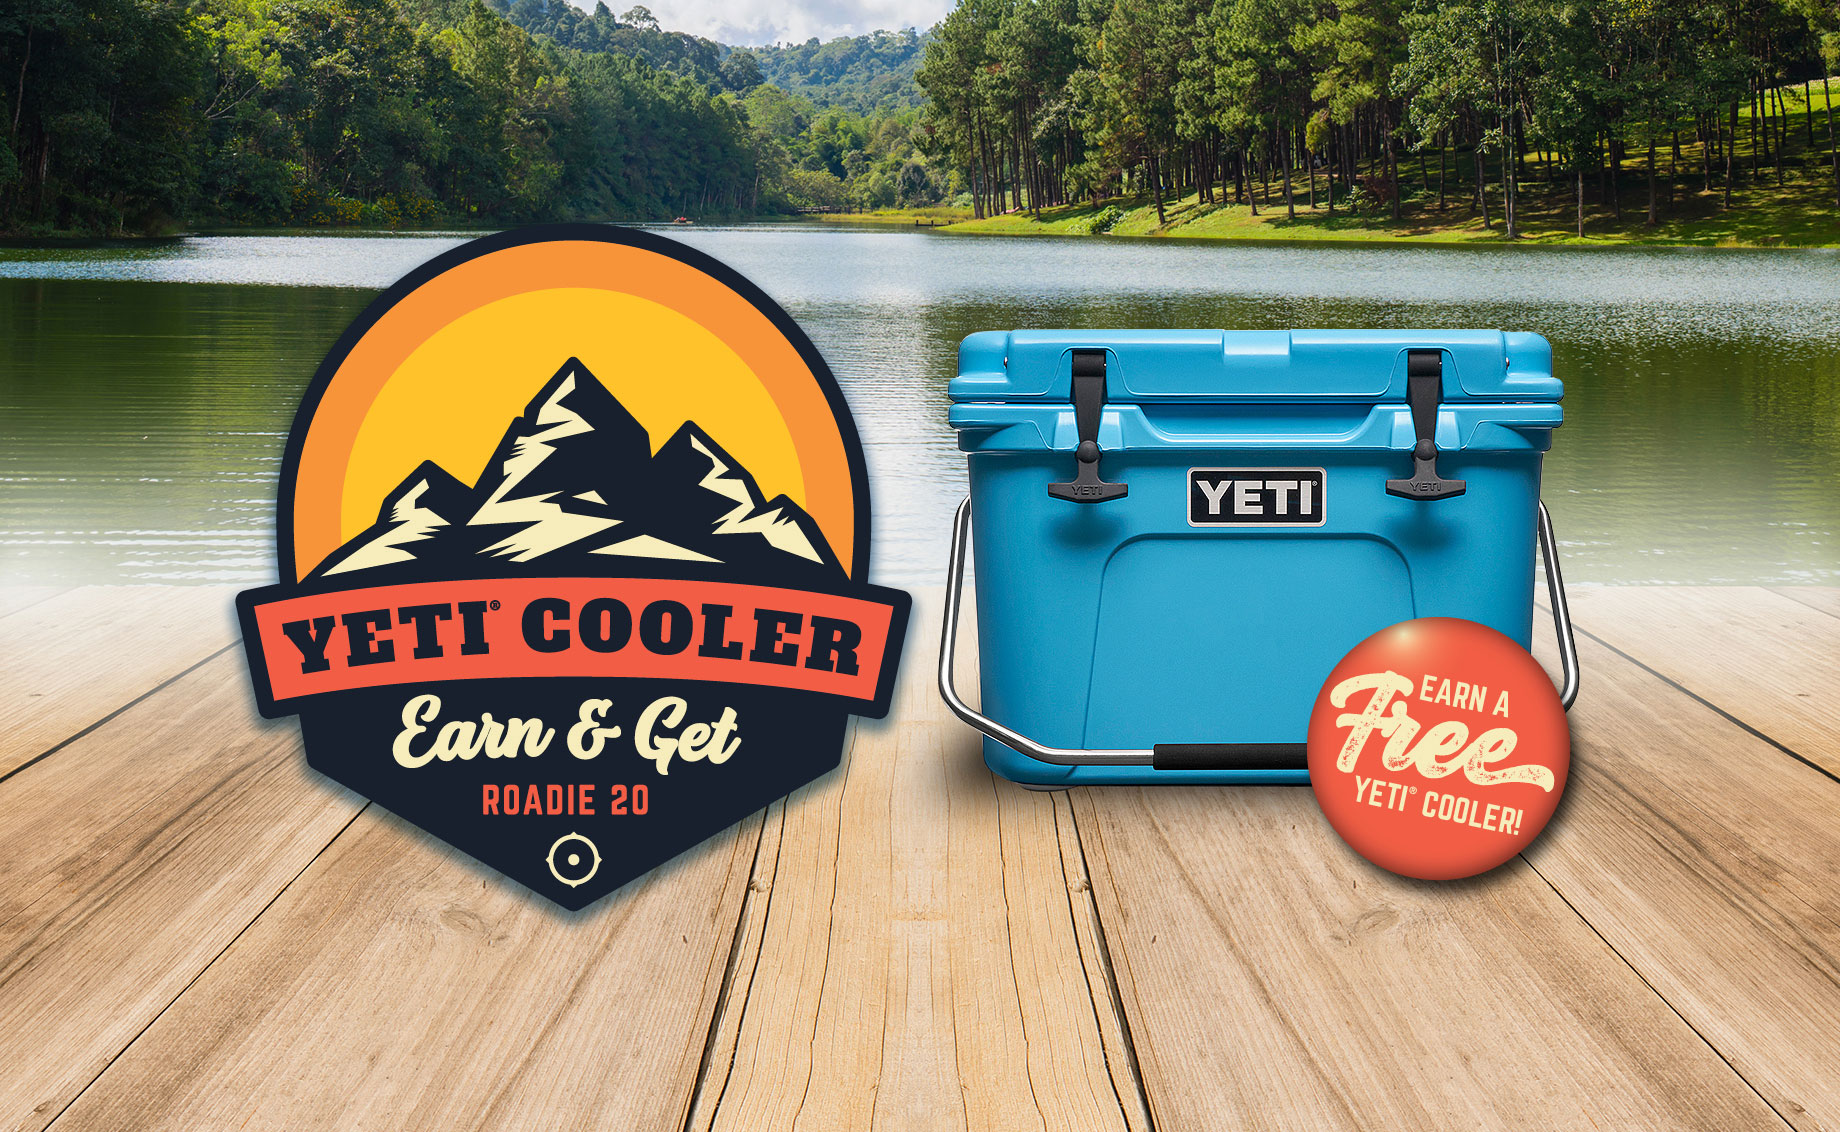 Yeti Roadie 20 Cooler Earn & Get – ALL YETI COOLERS DISTRIBUTED